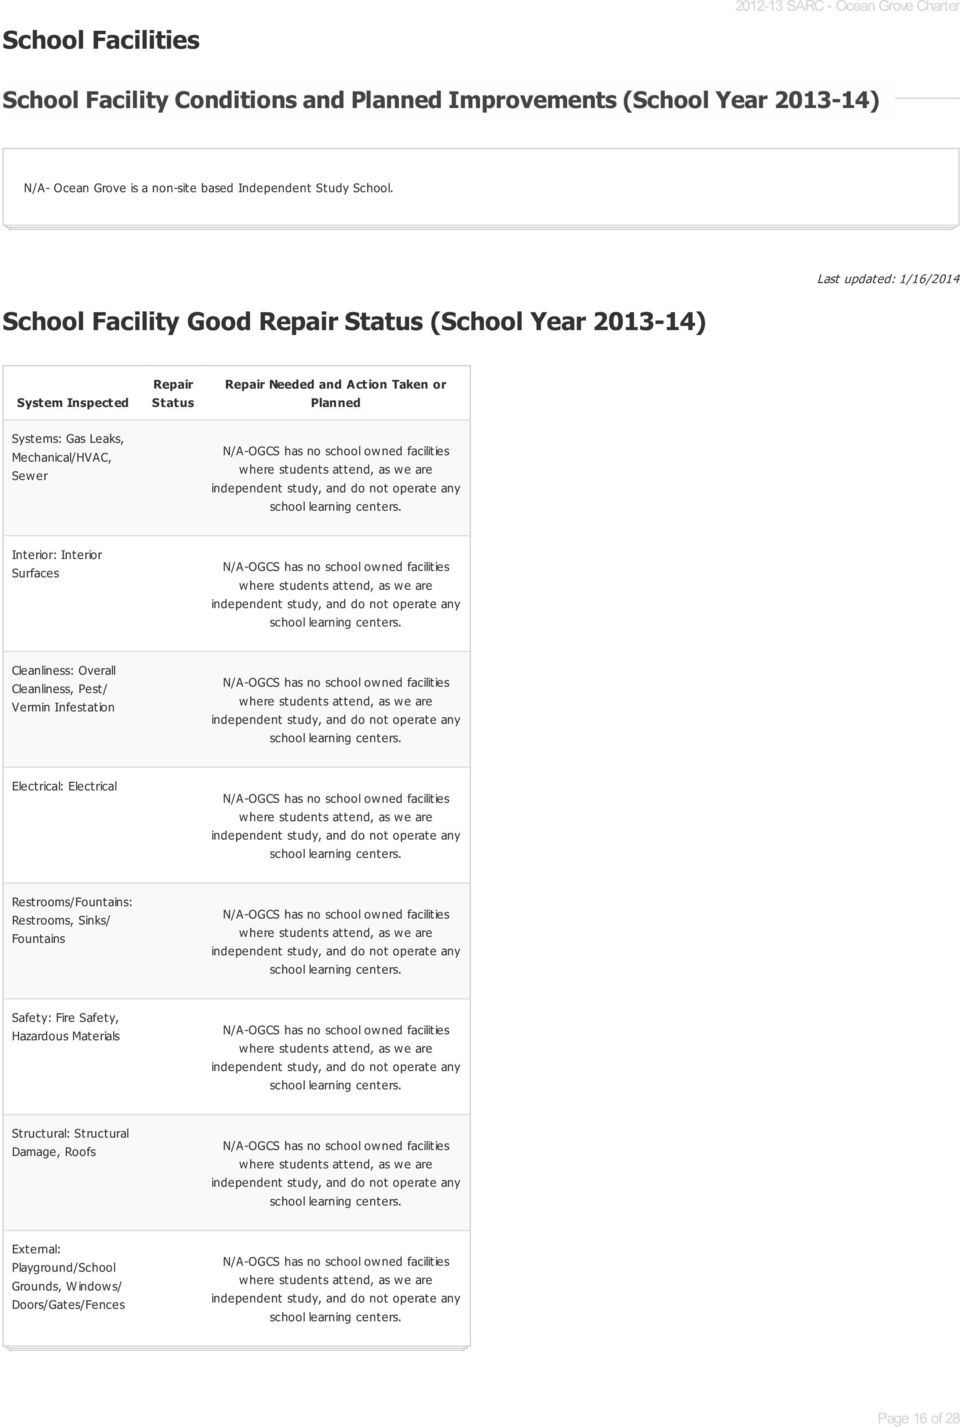 School Facility Good Repair Status (School Year 2013-14) Last updated: 1/16/2014 System Inspected Systems: Gas Leaks, Mechanical/HVAC, Sewer Repair Status Repair Needed and Action Taken or Planned